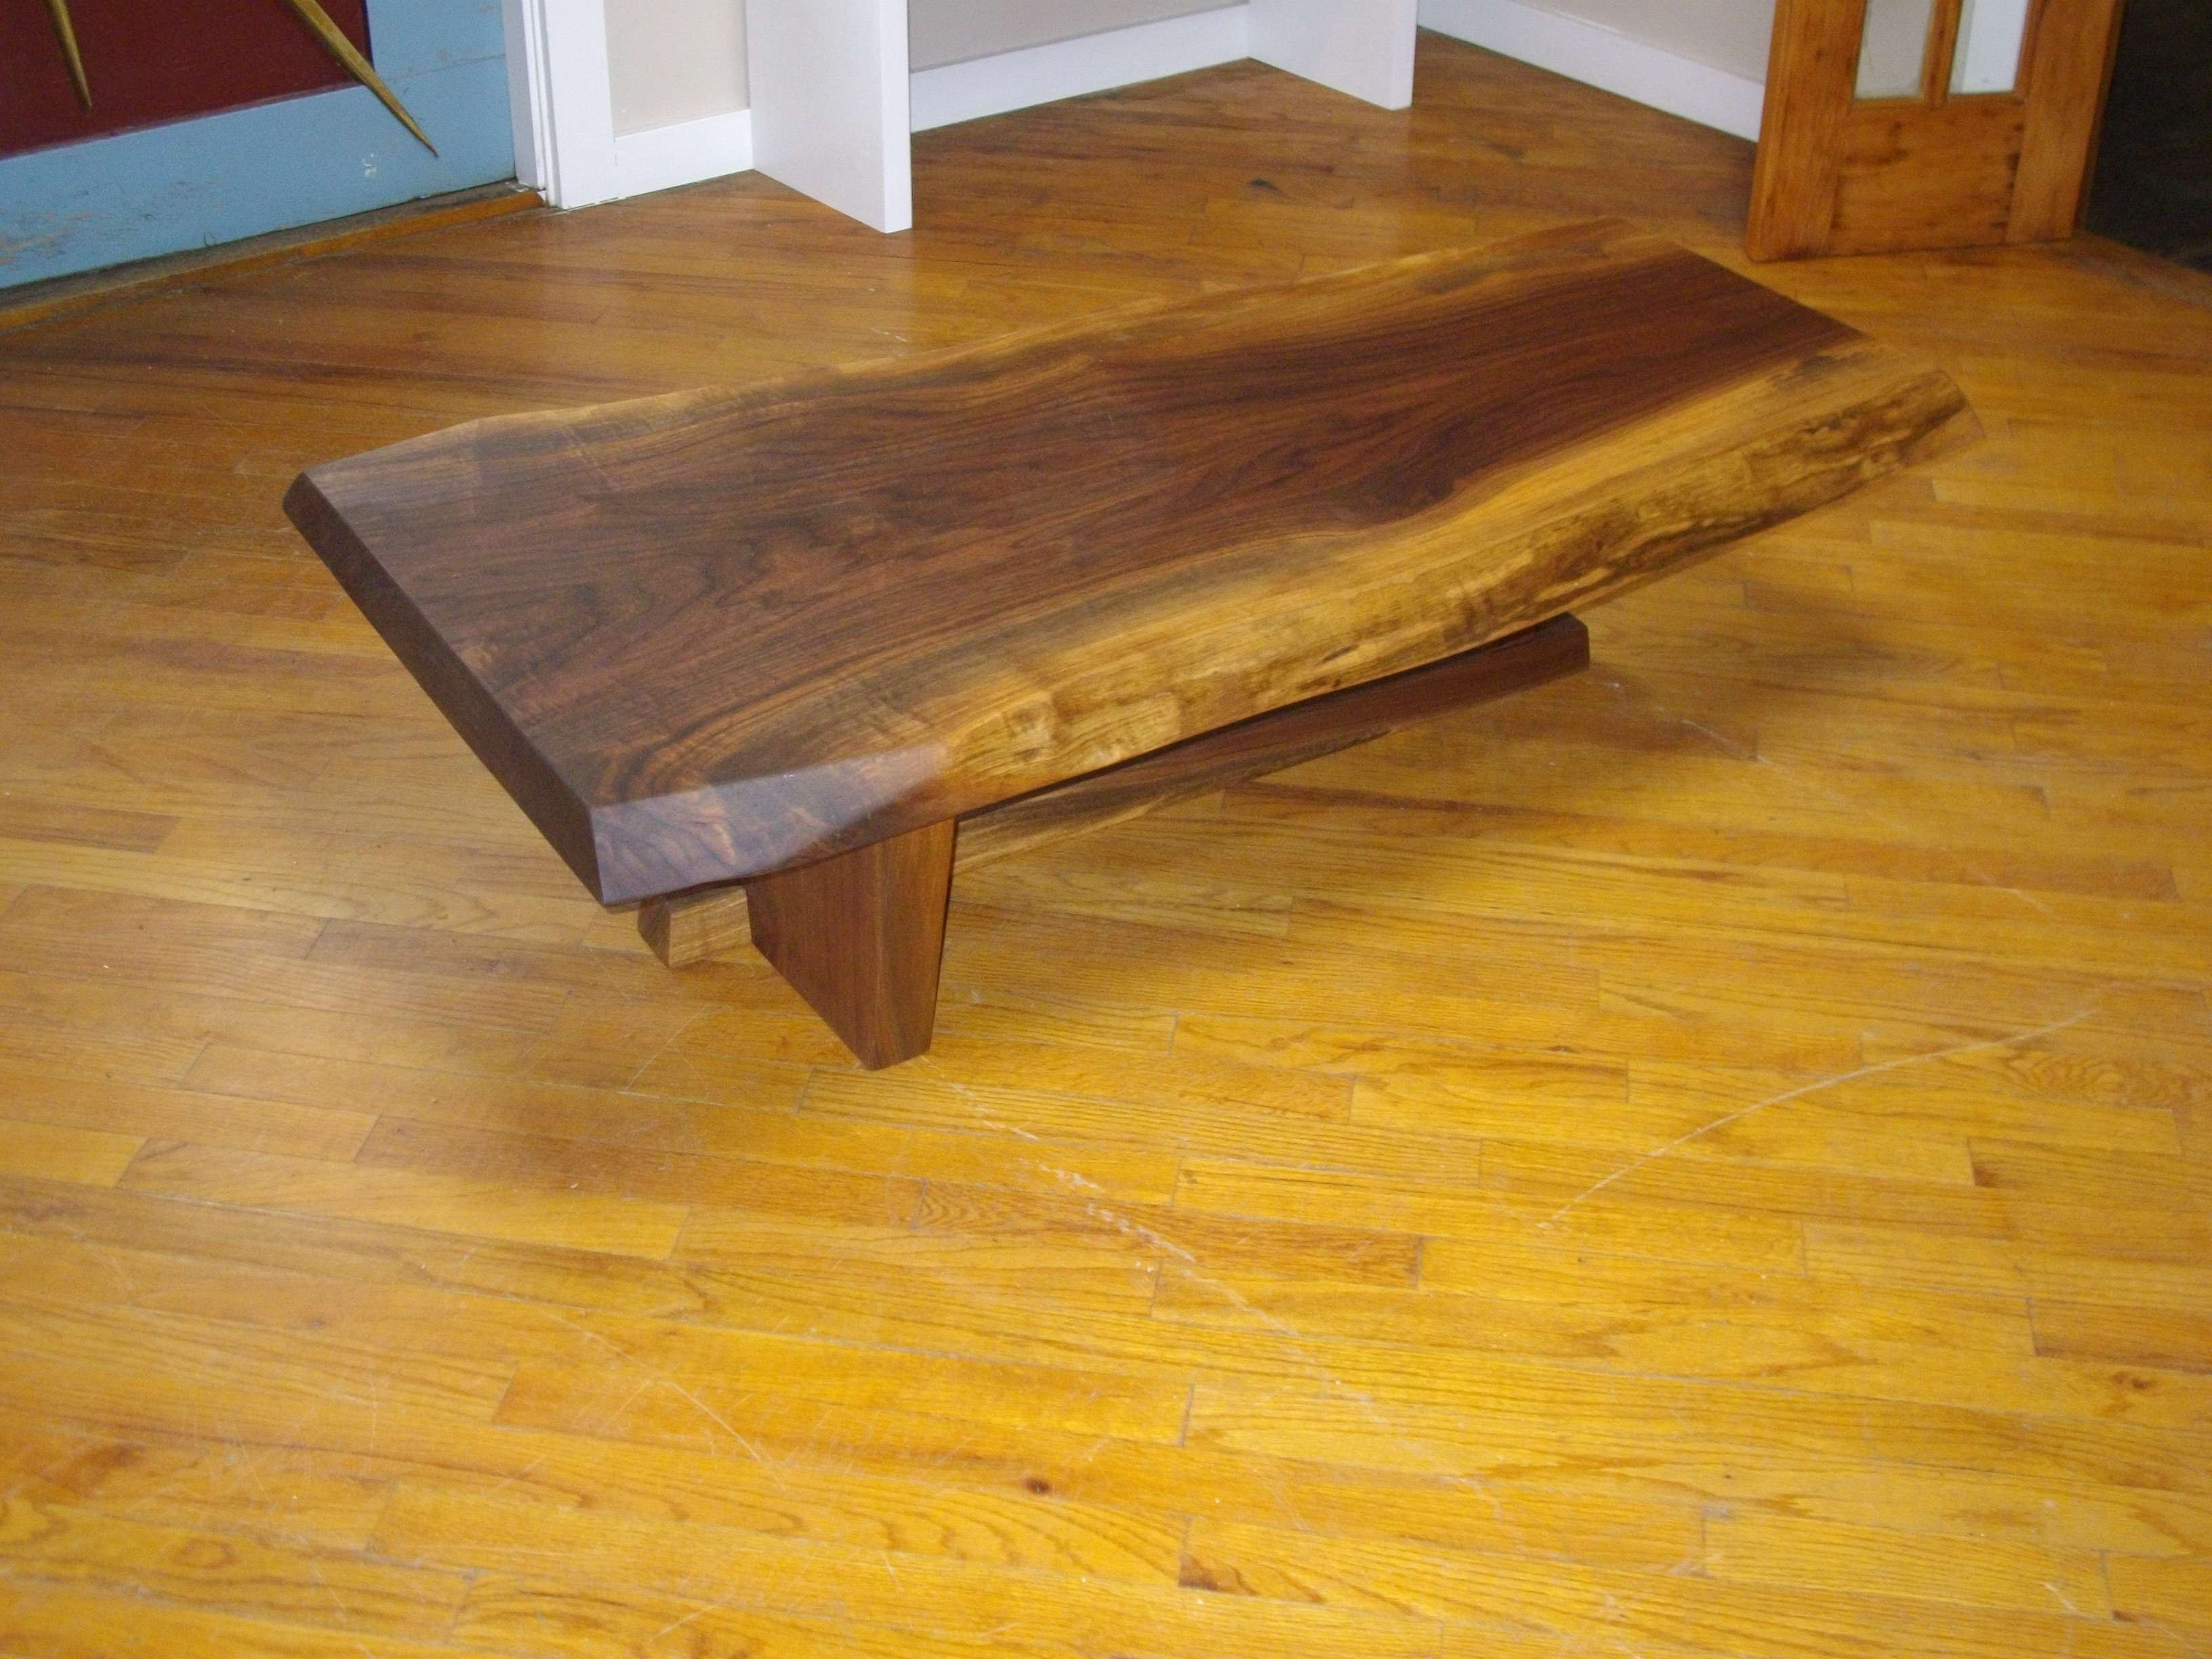 Well Known Rustic Oak Coffee Tables With Regard To Oak Coffee Table Plans – Oak Coffee Table, Brushed Nickel Hardware (View 16 of 20)